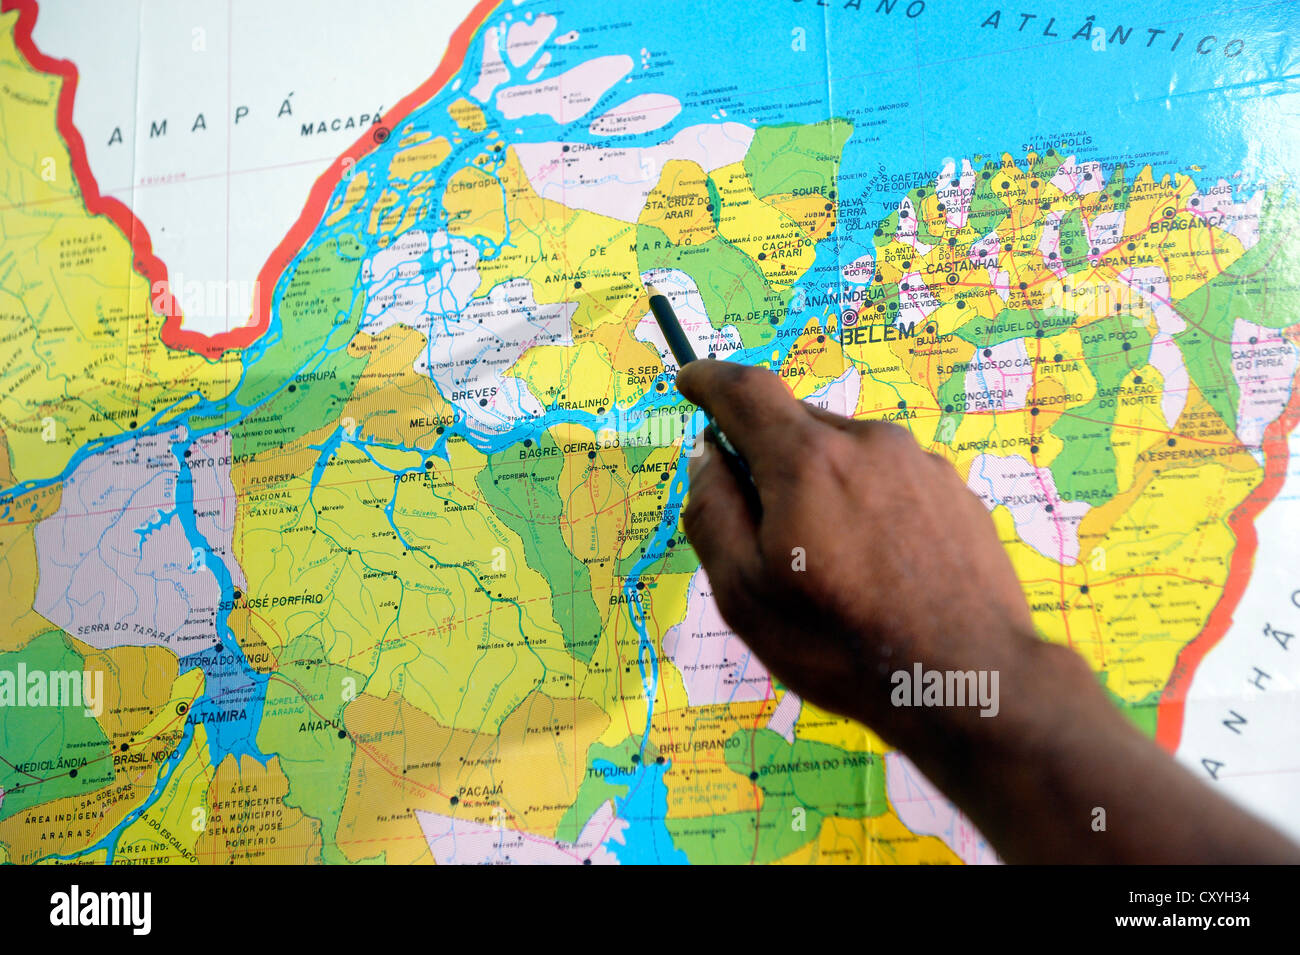 Amazon rainforest map stock photos amazon rainforest map stock hand pointing towards a map with a pen towards a location in the amazon rainforest gumiabroncs Image collections